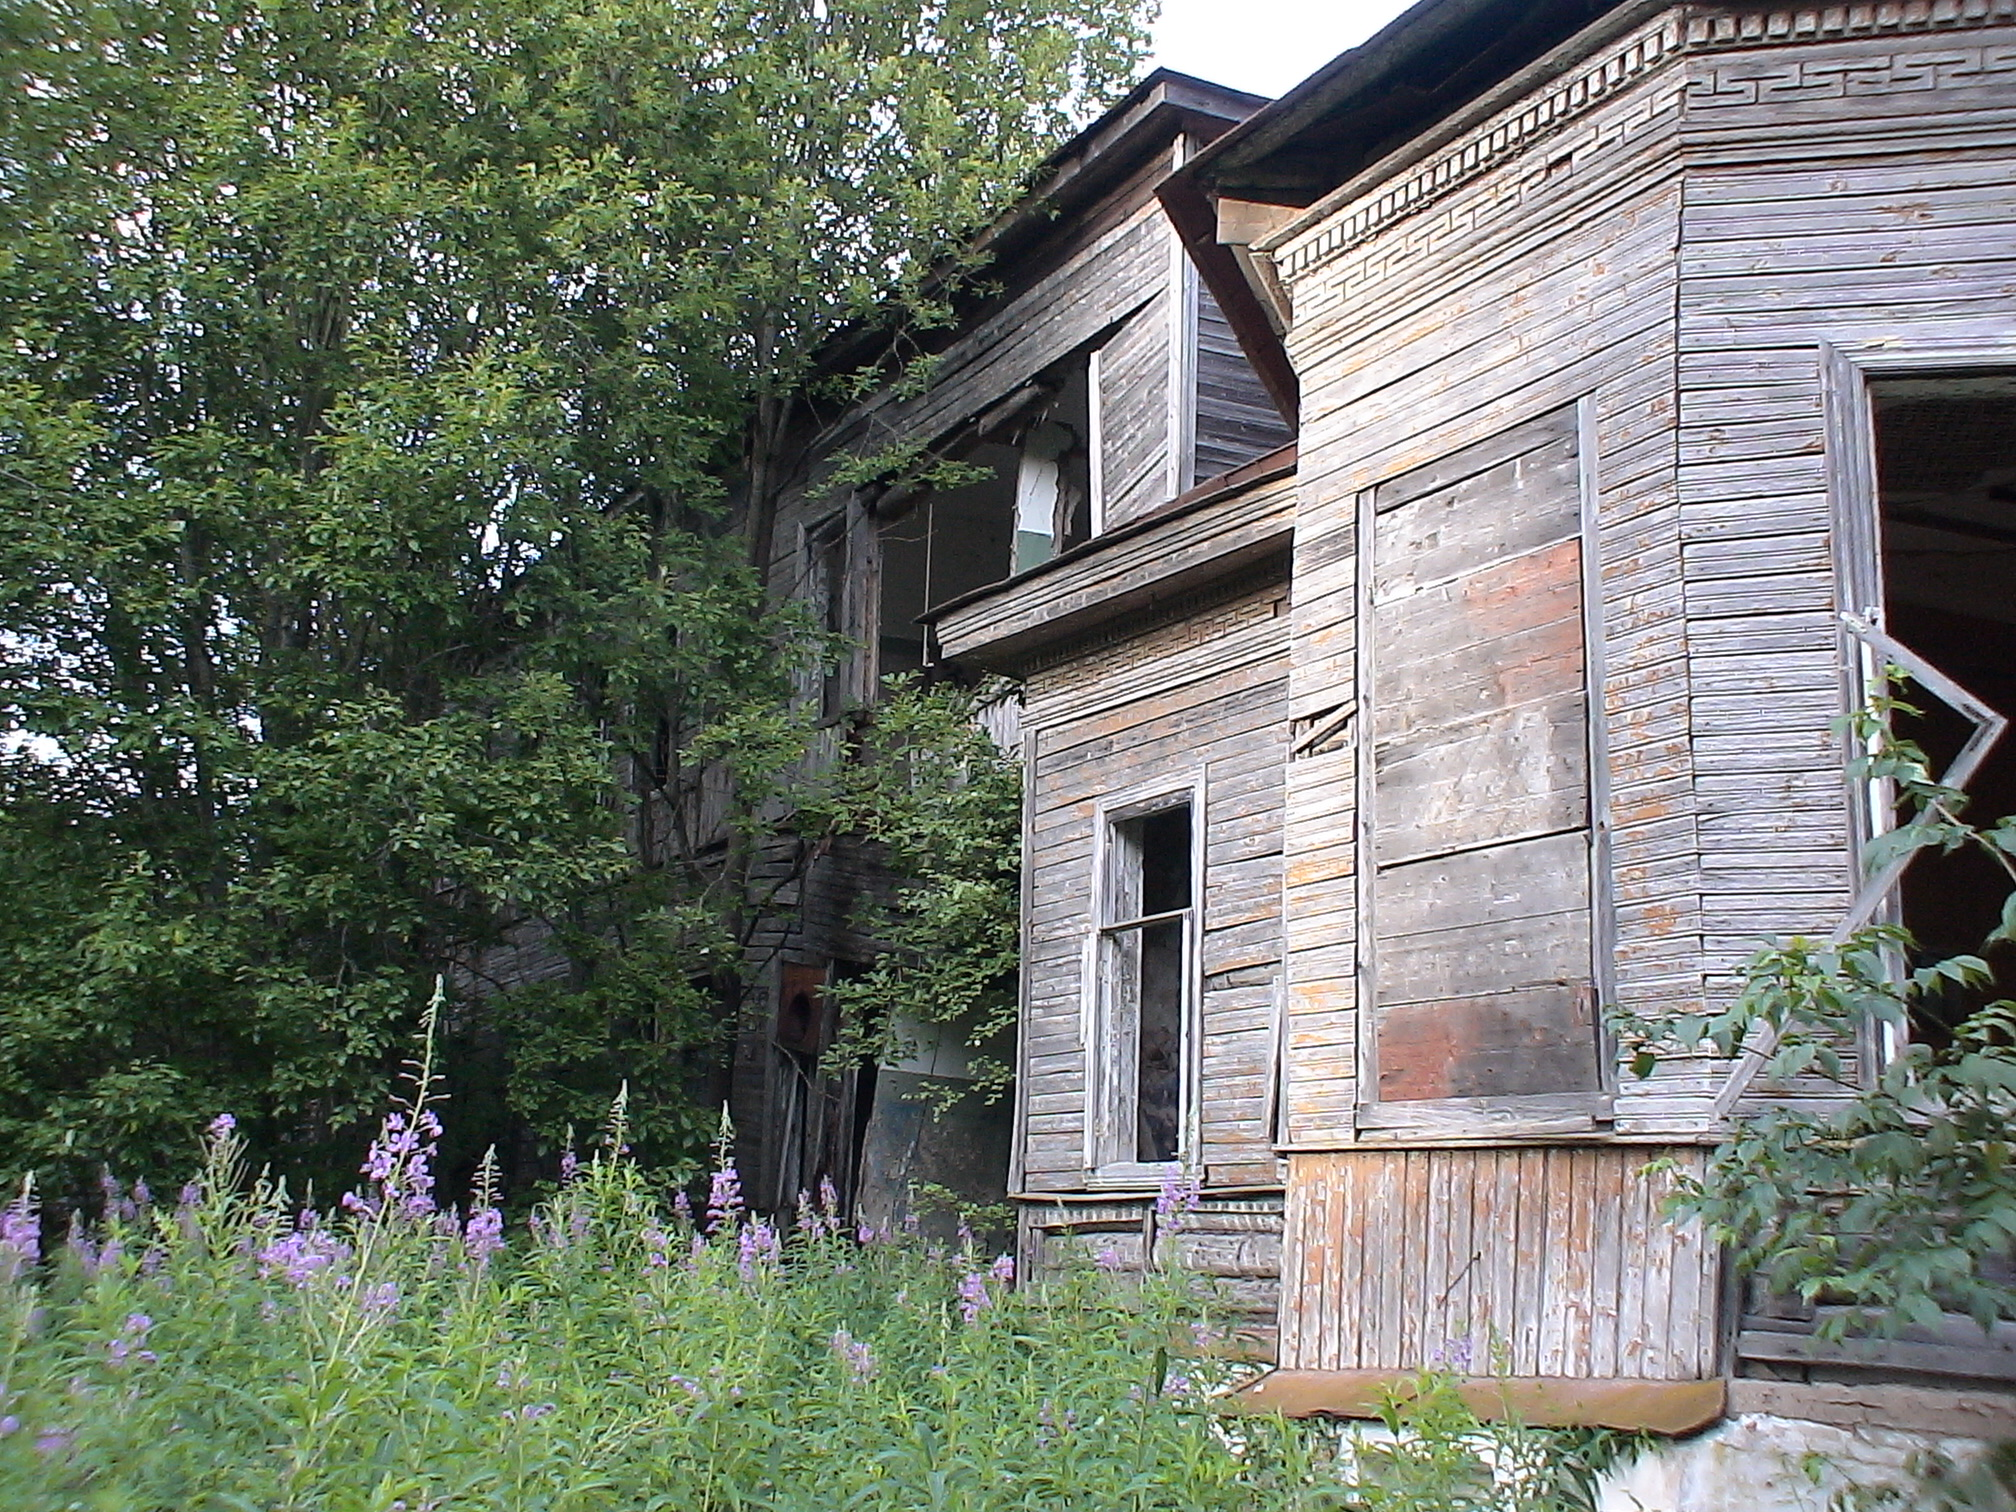 "Last August, the estate of Hannibal in Kobrin Kobrino, estate, Pushkin, here, society, last, ""Kobrino"", small river, before, childhood, burned down. Here, place, chairman, RimskyKorsakov, Rubinstein, estate, war, manor, Kobrin, practically"